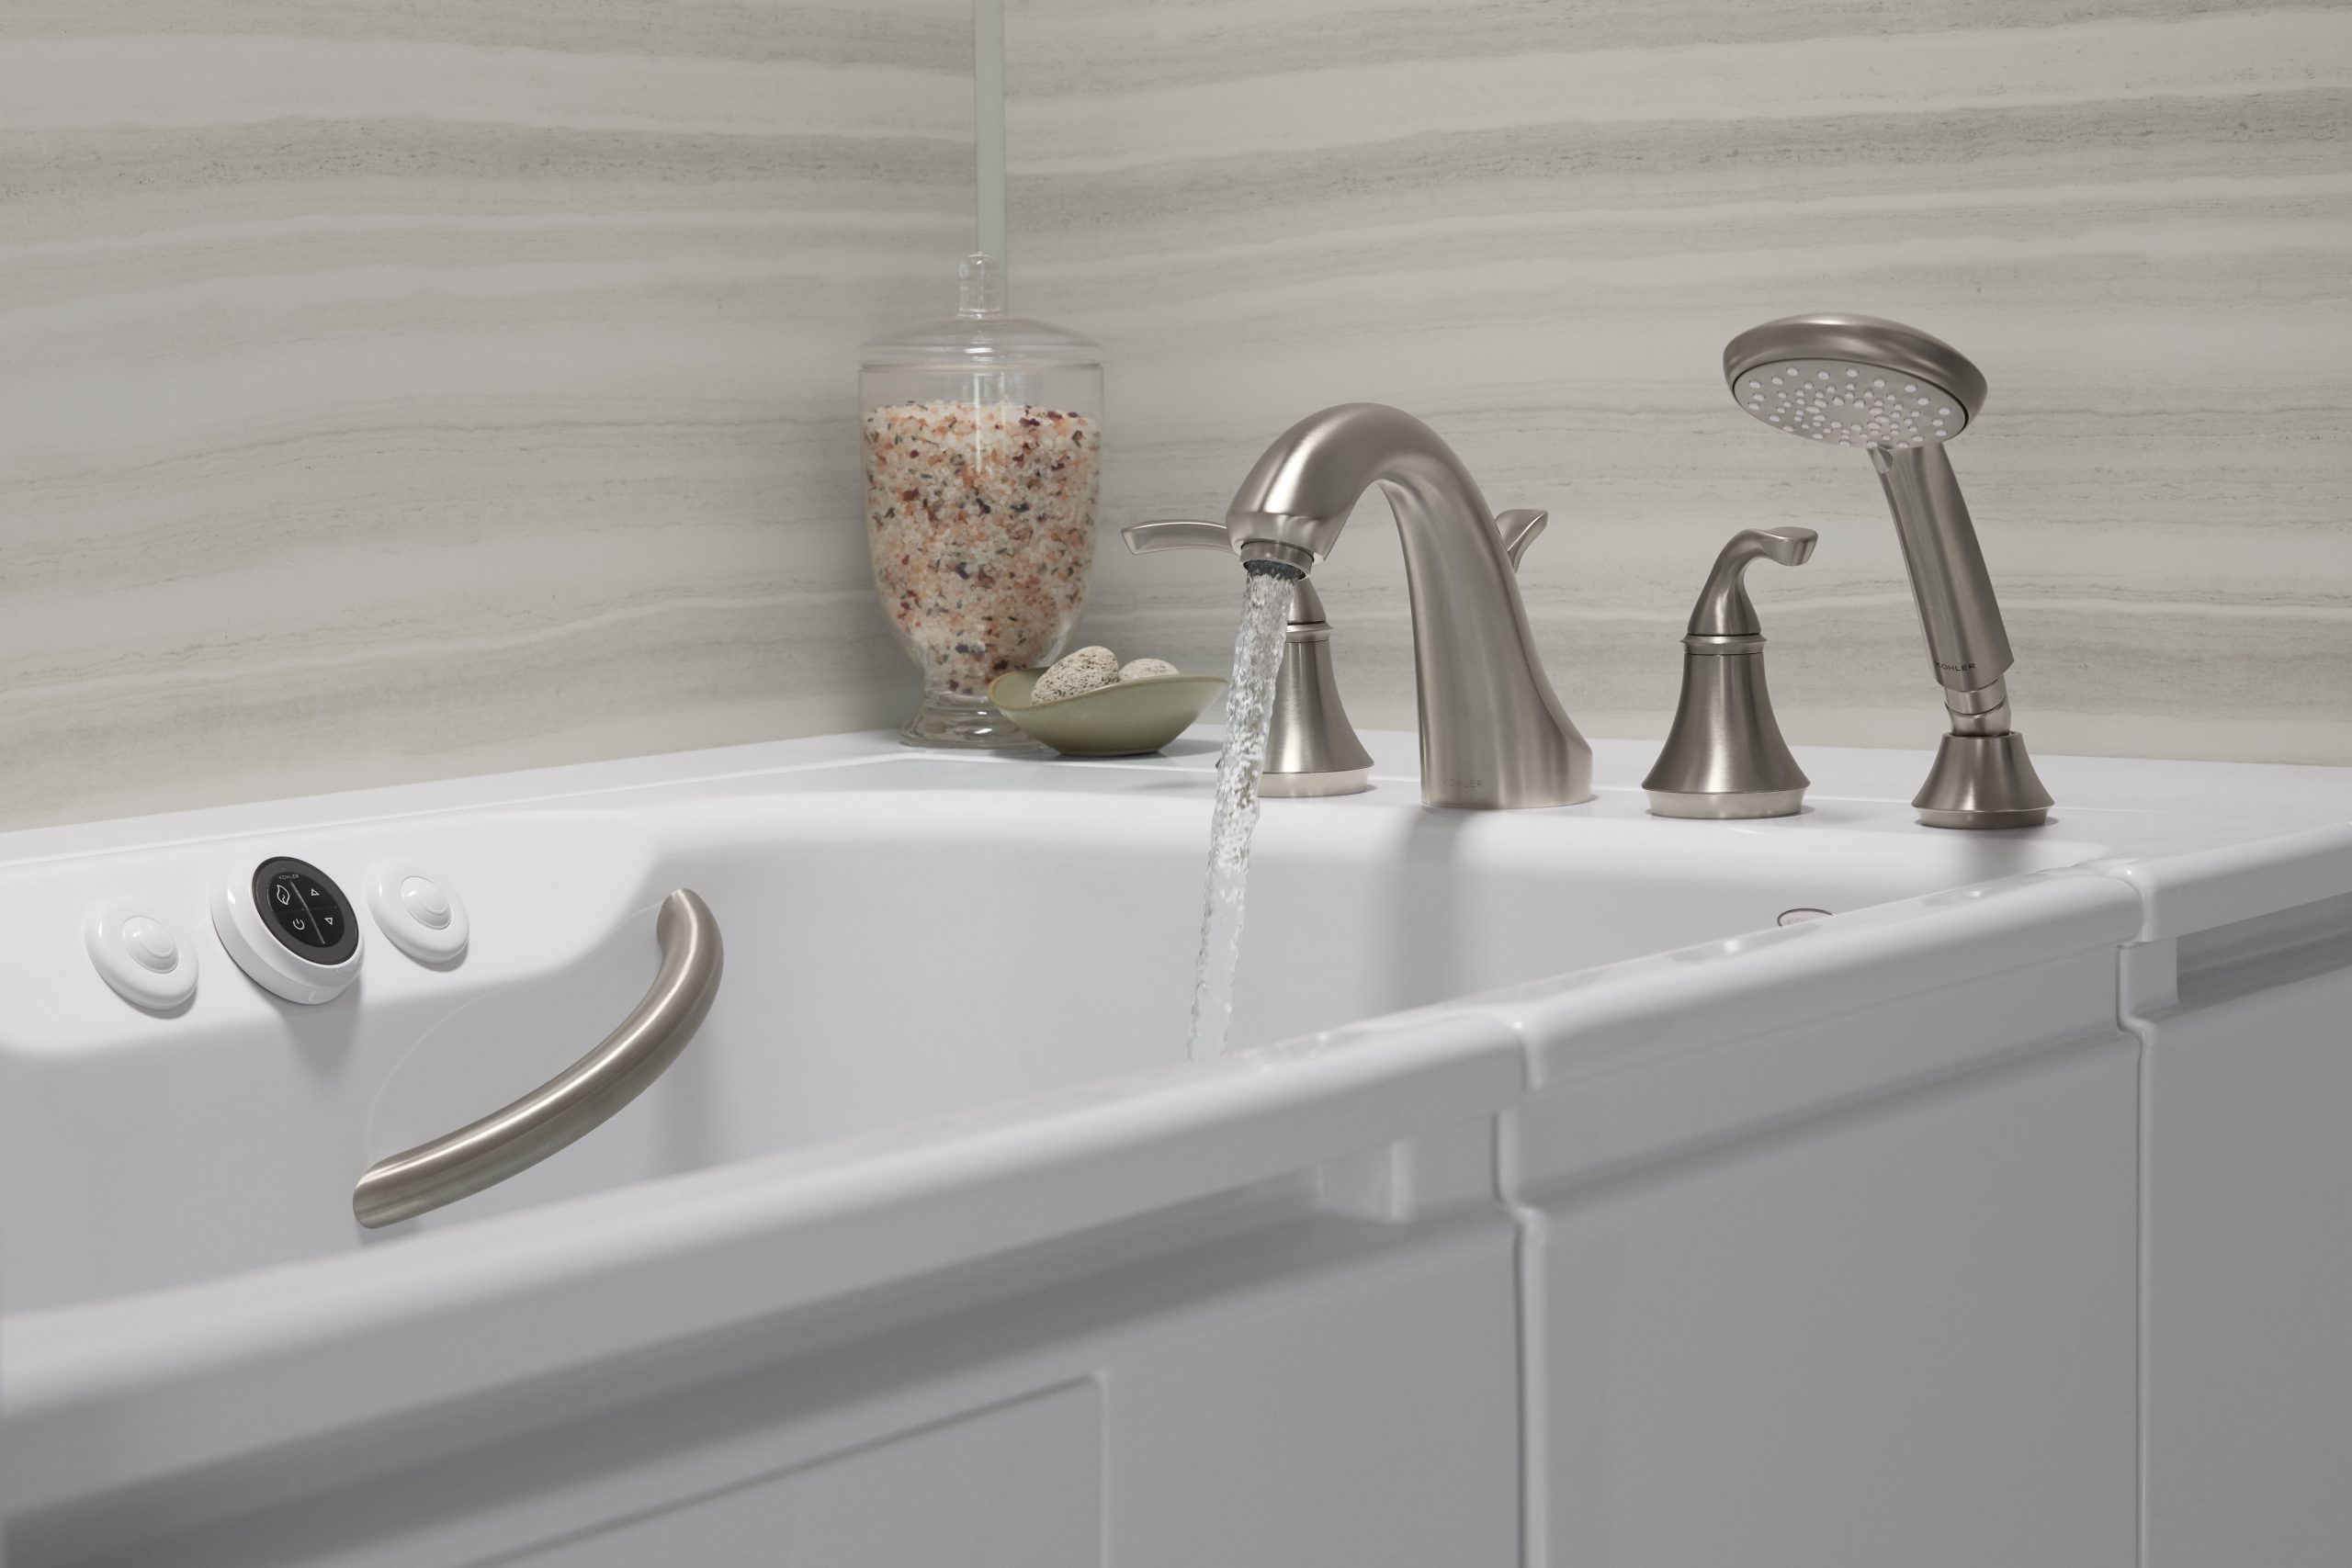 Water running from nickel faucet of walk-in bath